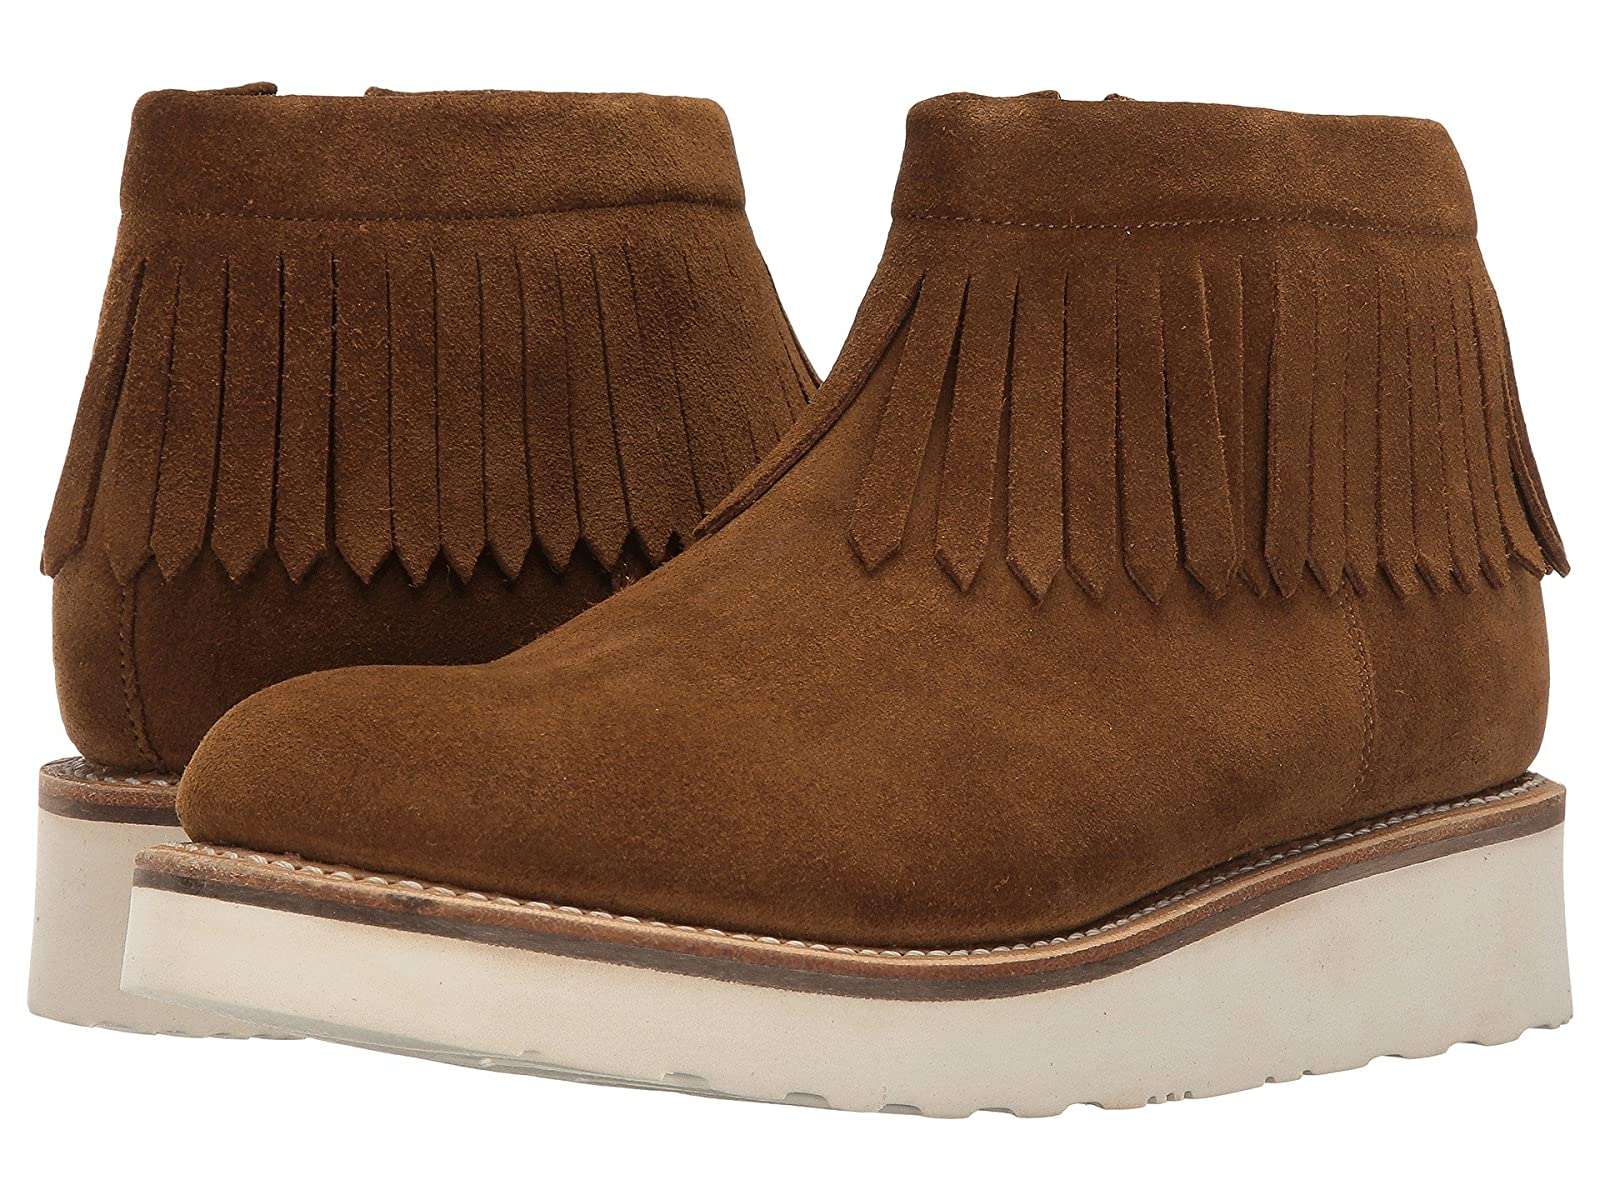 Grenson Trixie MoccasinCheap and distinctive eye-catching shoes